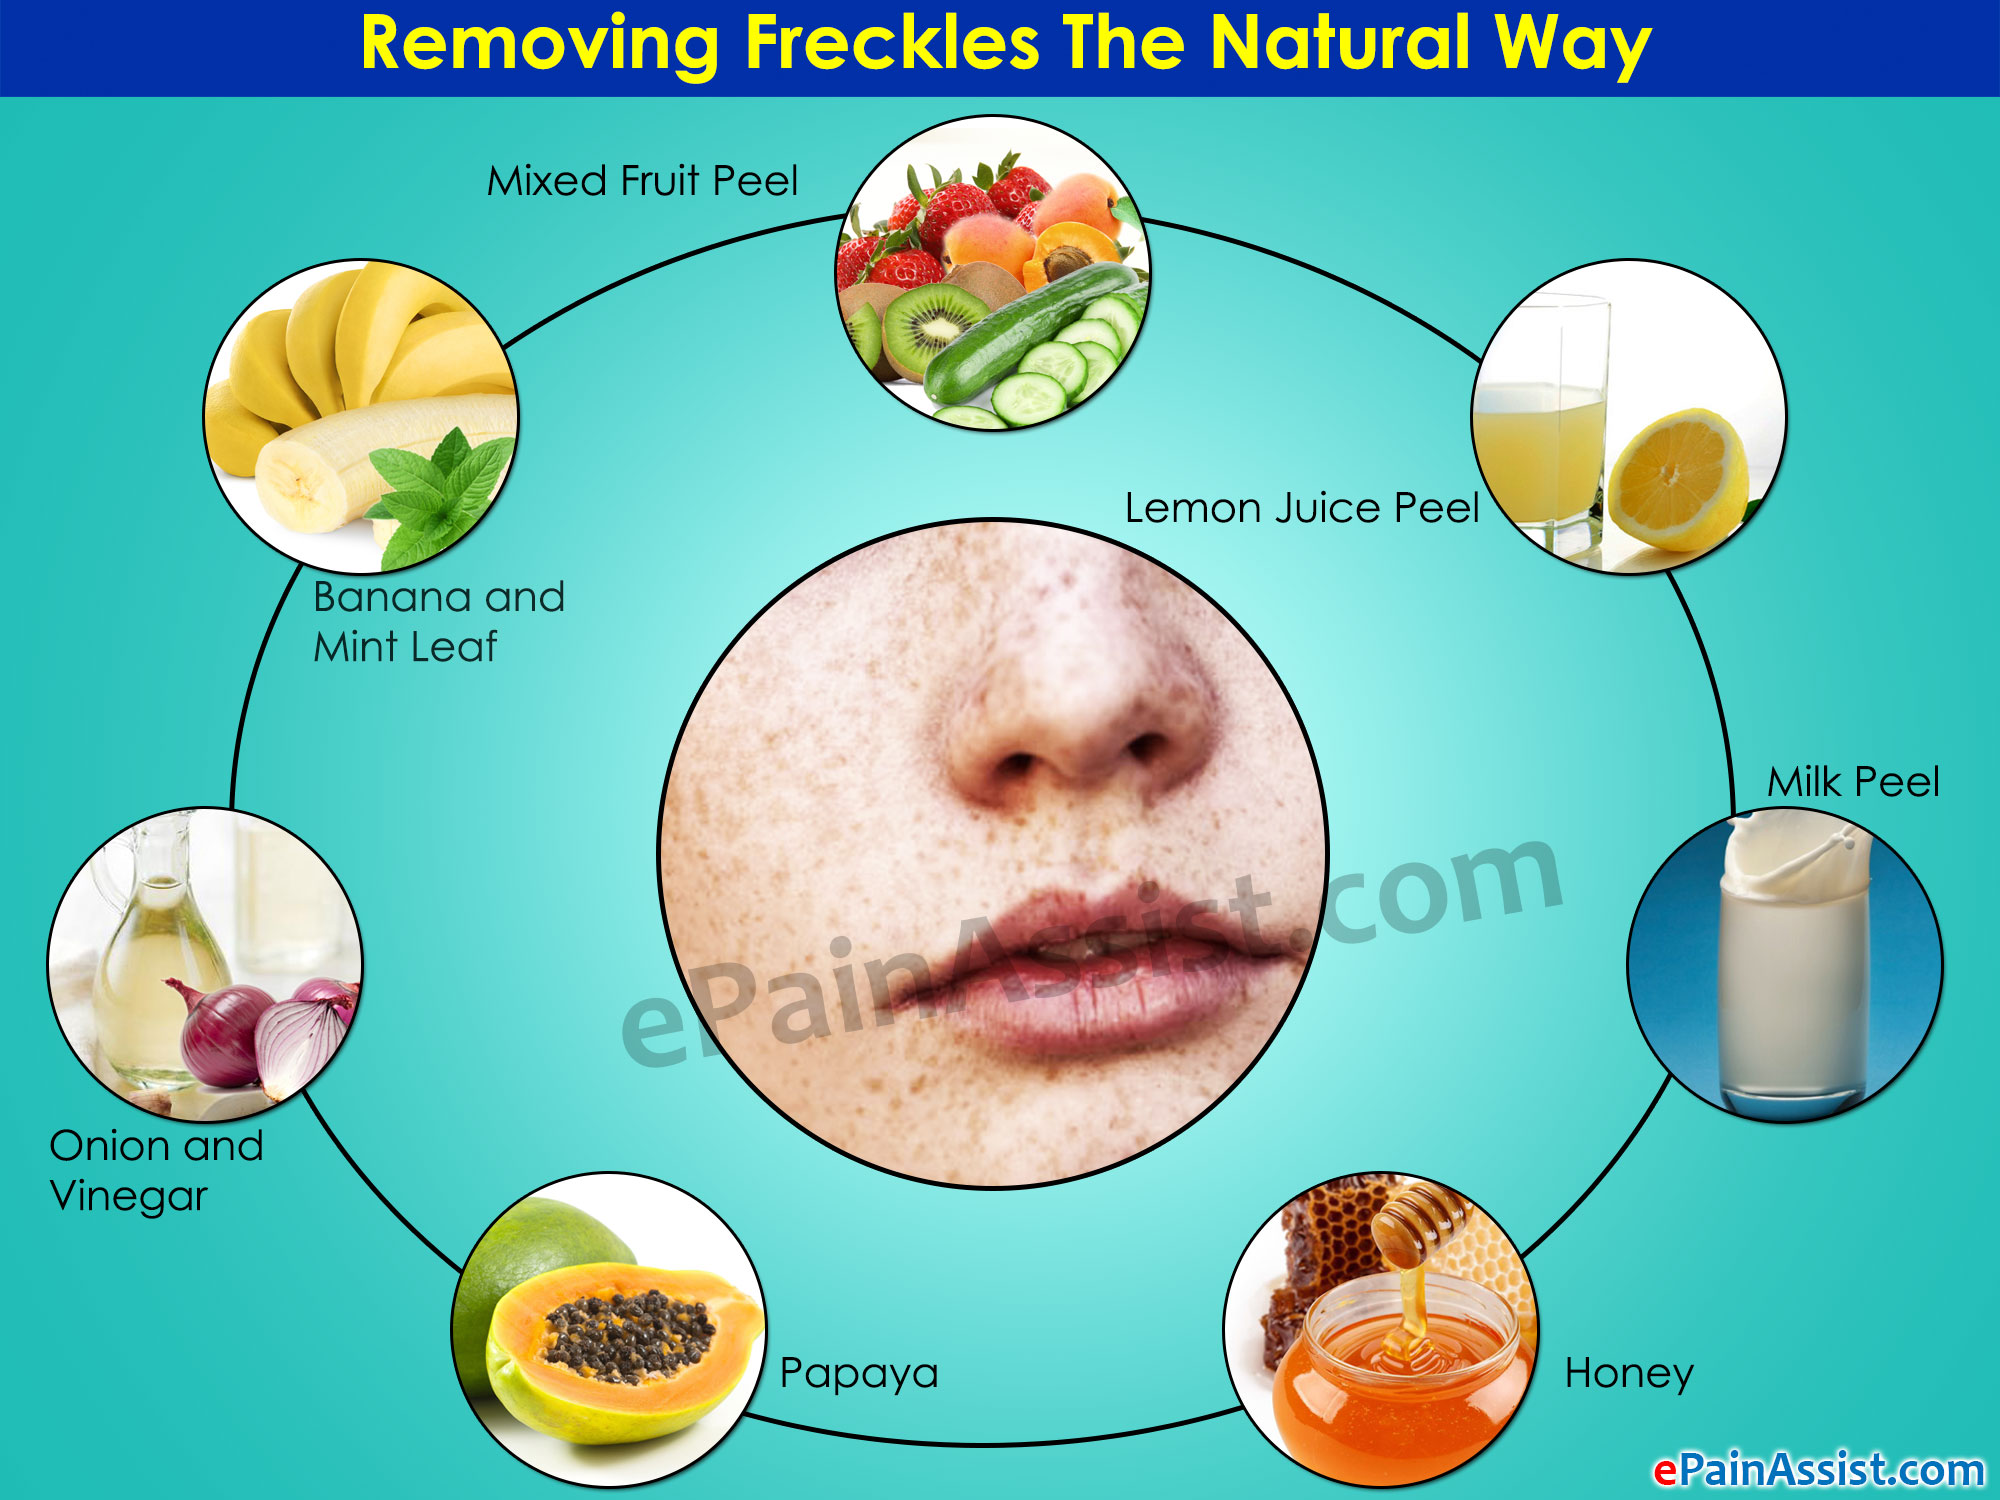 Remove Freckles The Natural Way